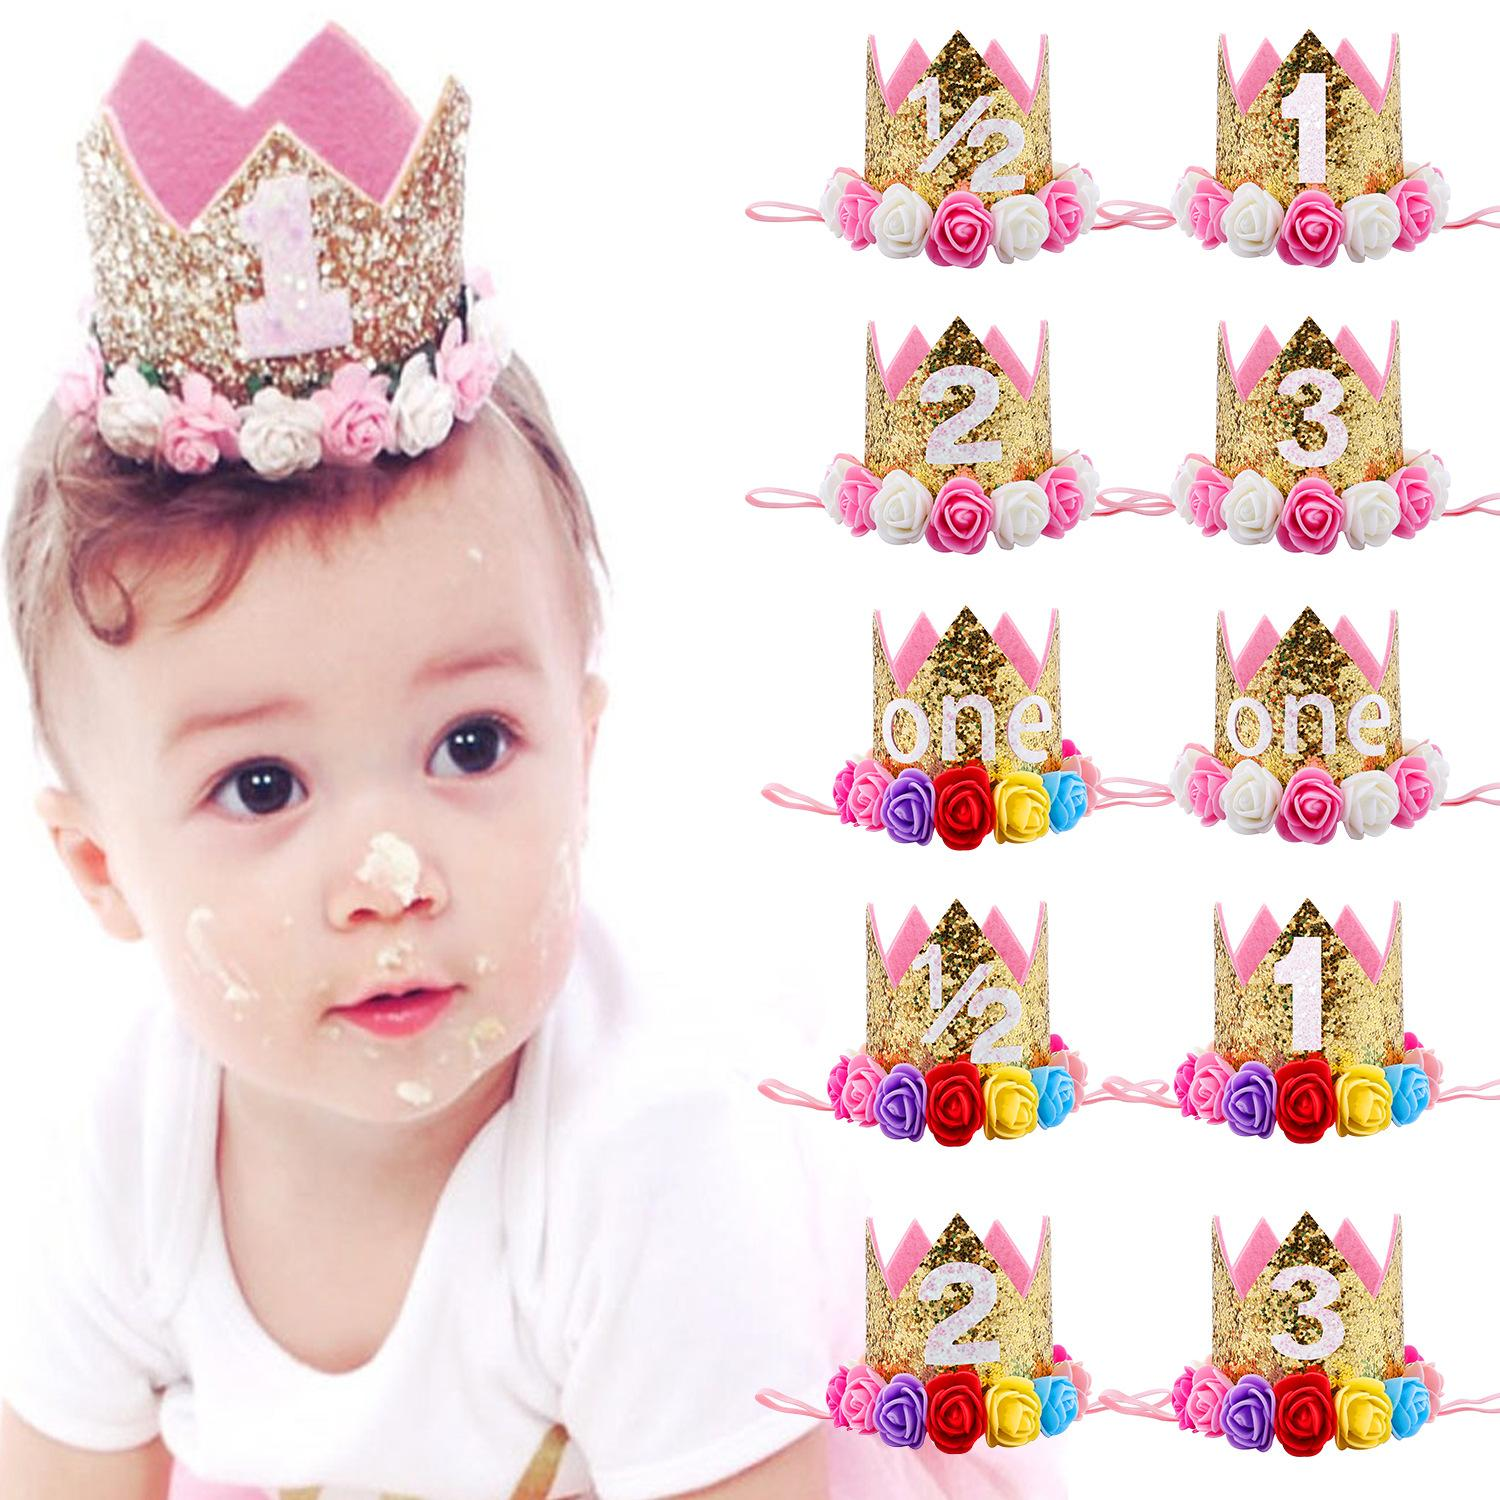 Infant Baby Leaves Headband Hair Band Headwear for Party Photography Photo Props